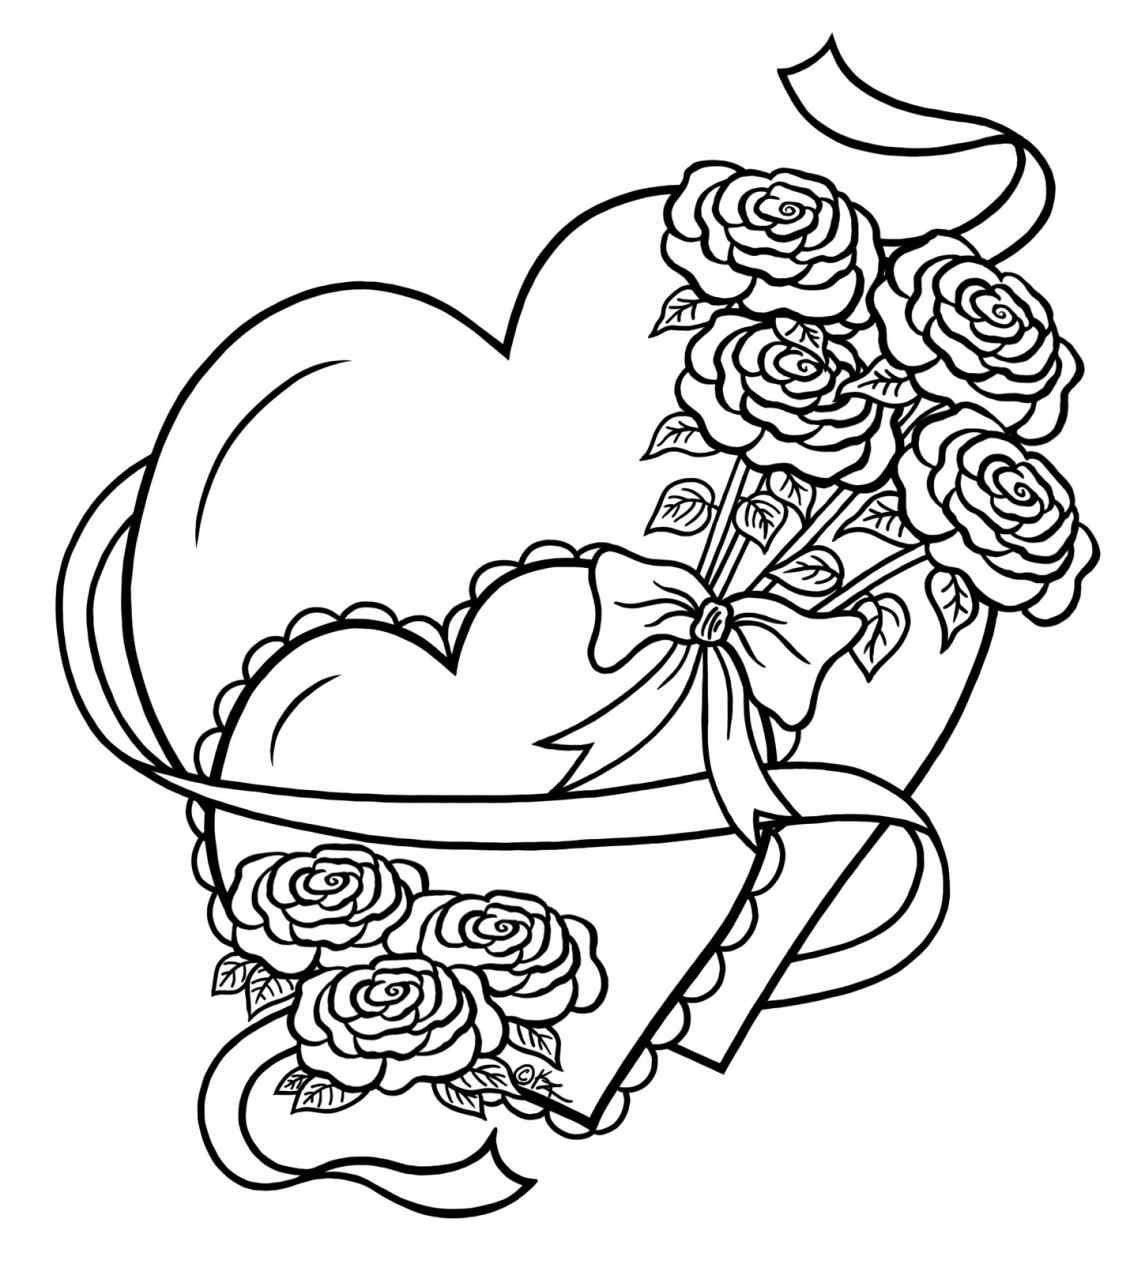 1145x1264 Heart And Rose Drawings In Pencil Group